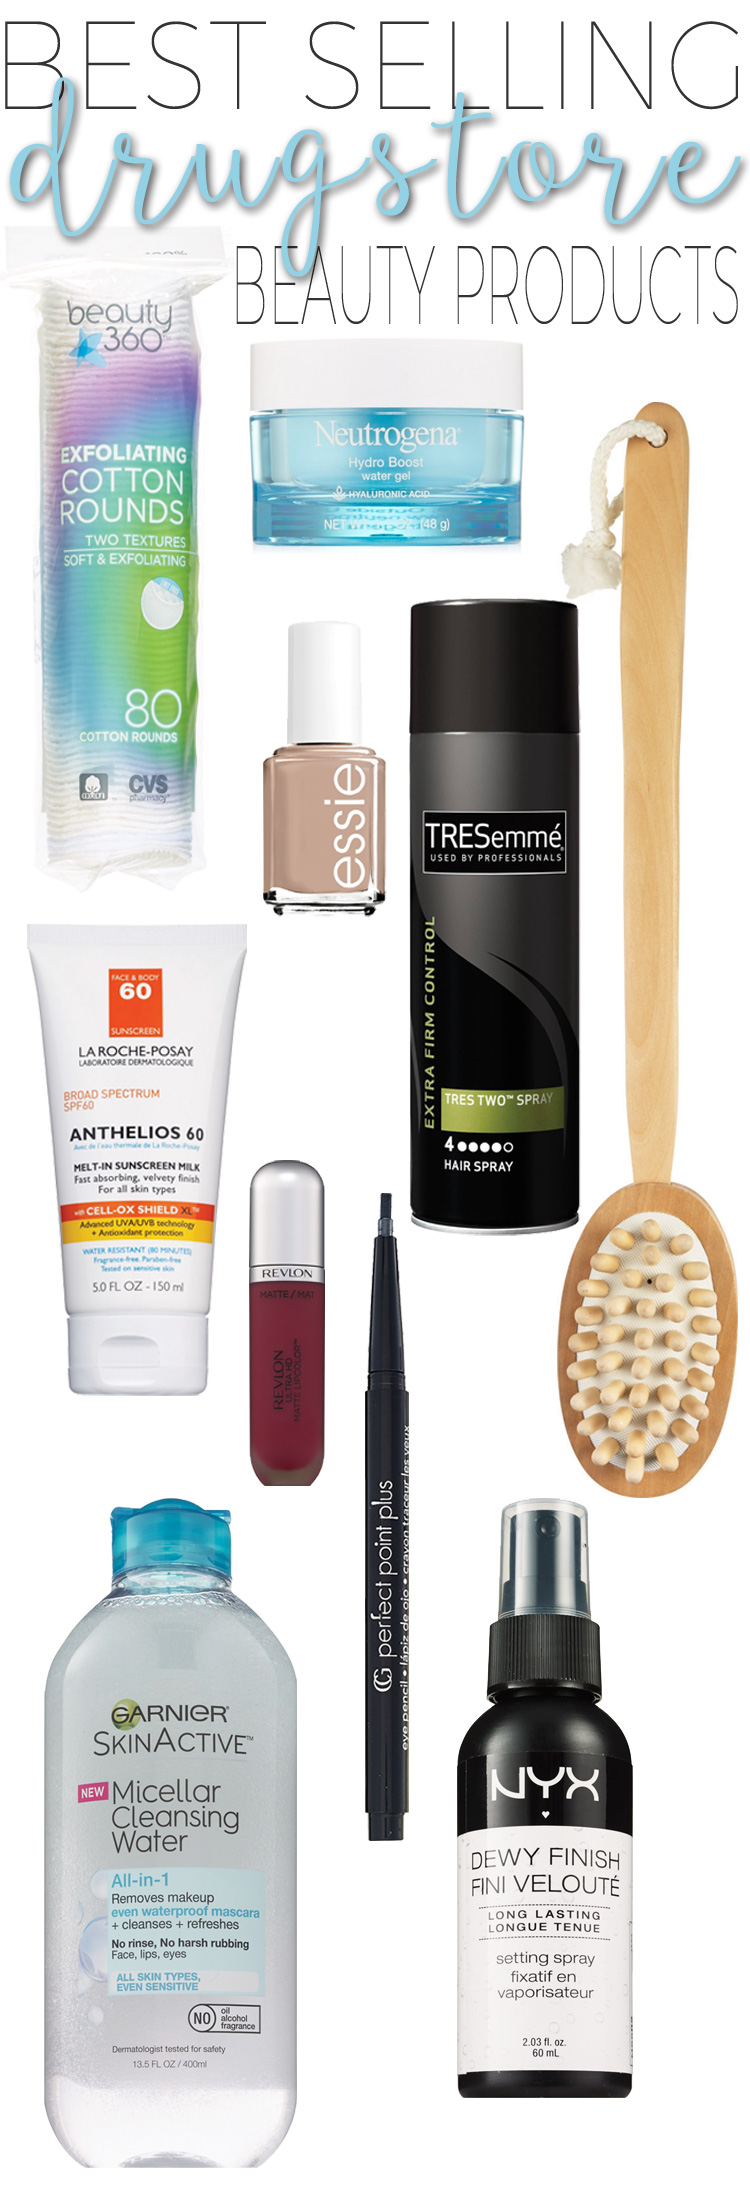 Best Selling Drugstore Beauty Products